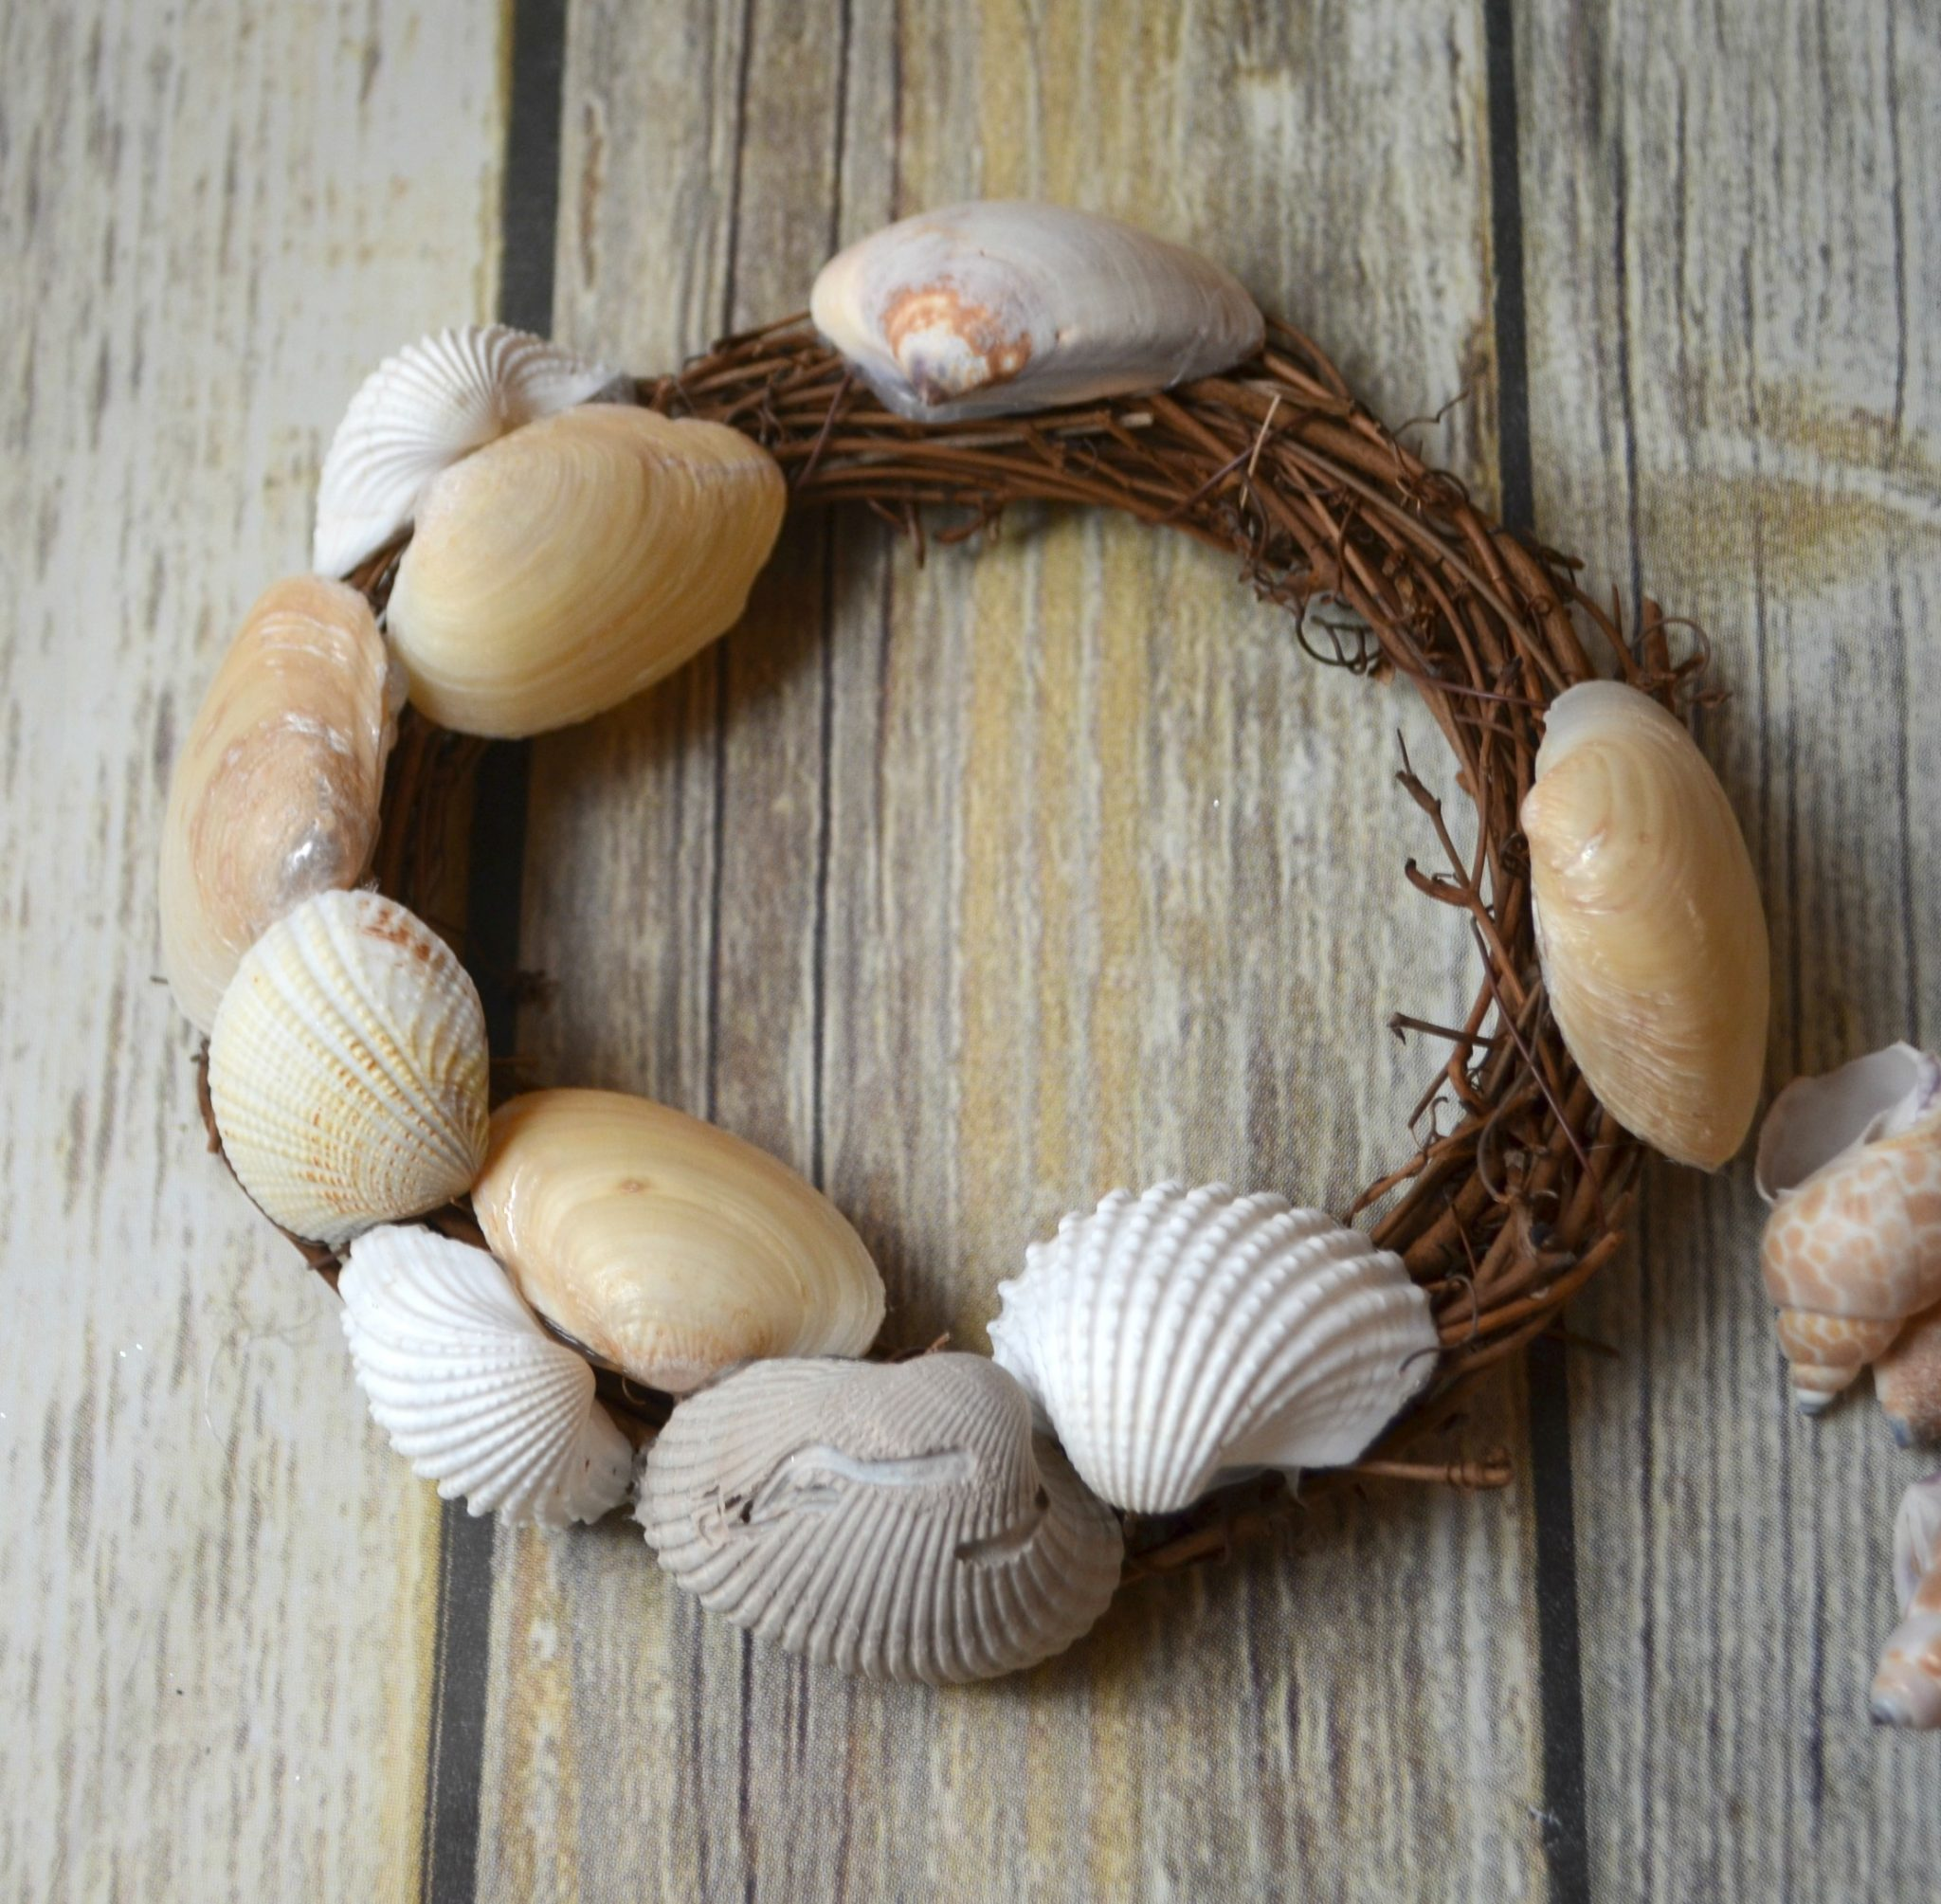 beachwreath2